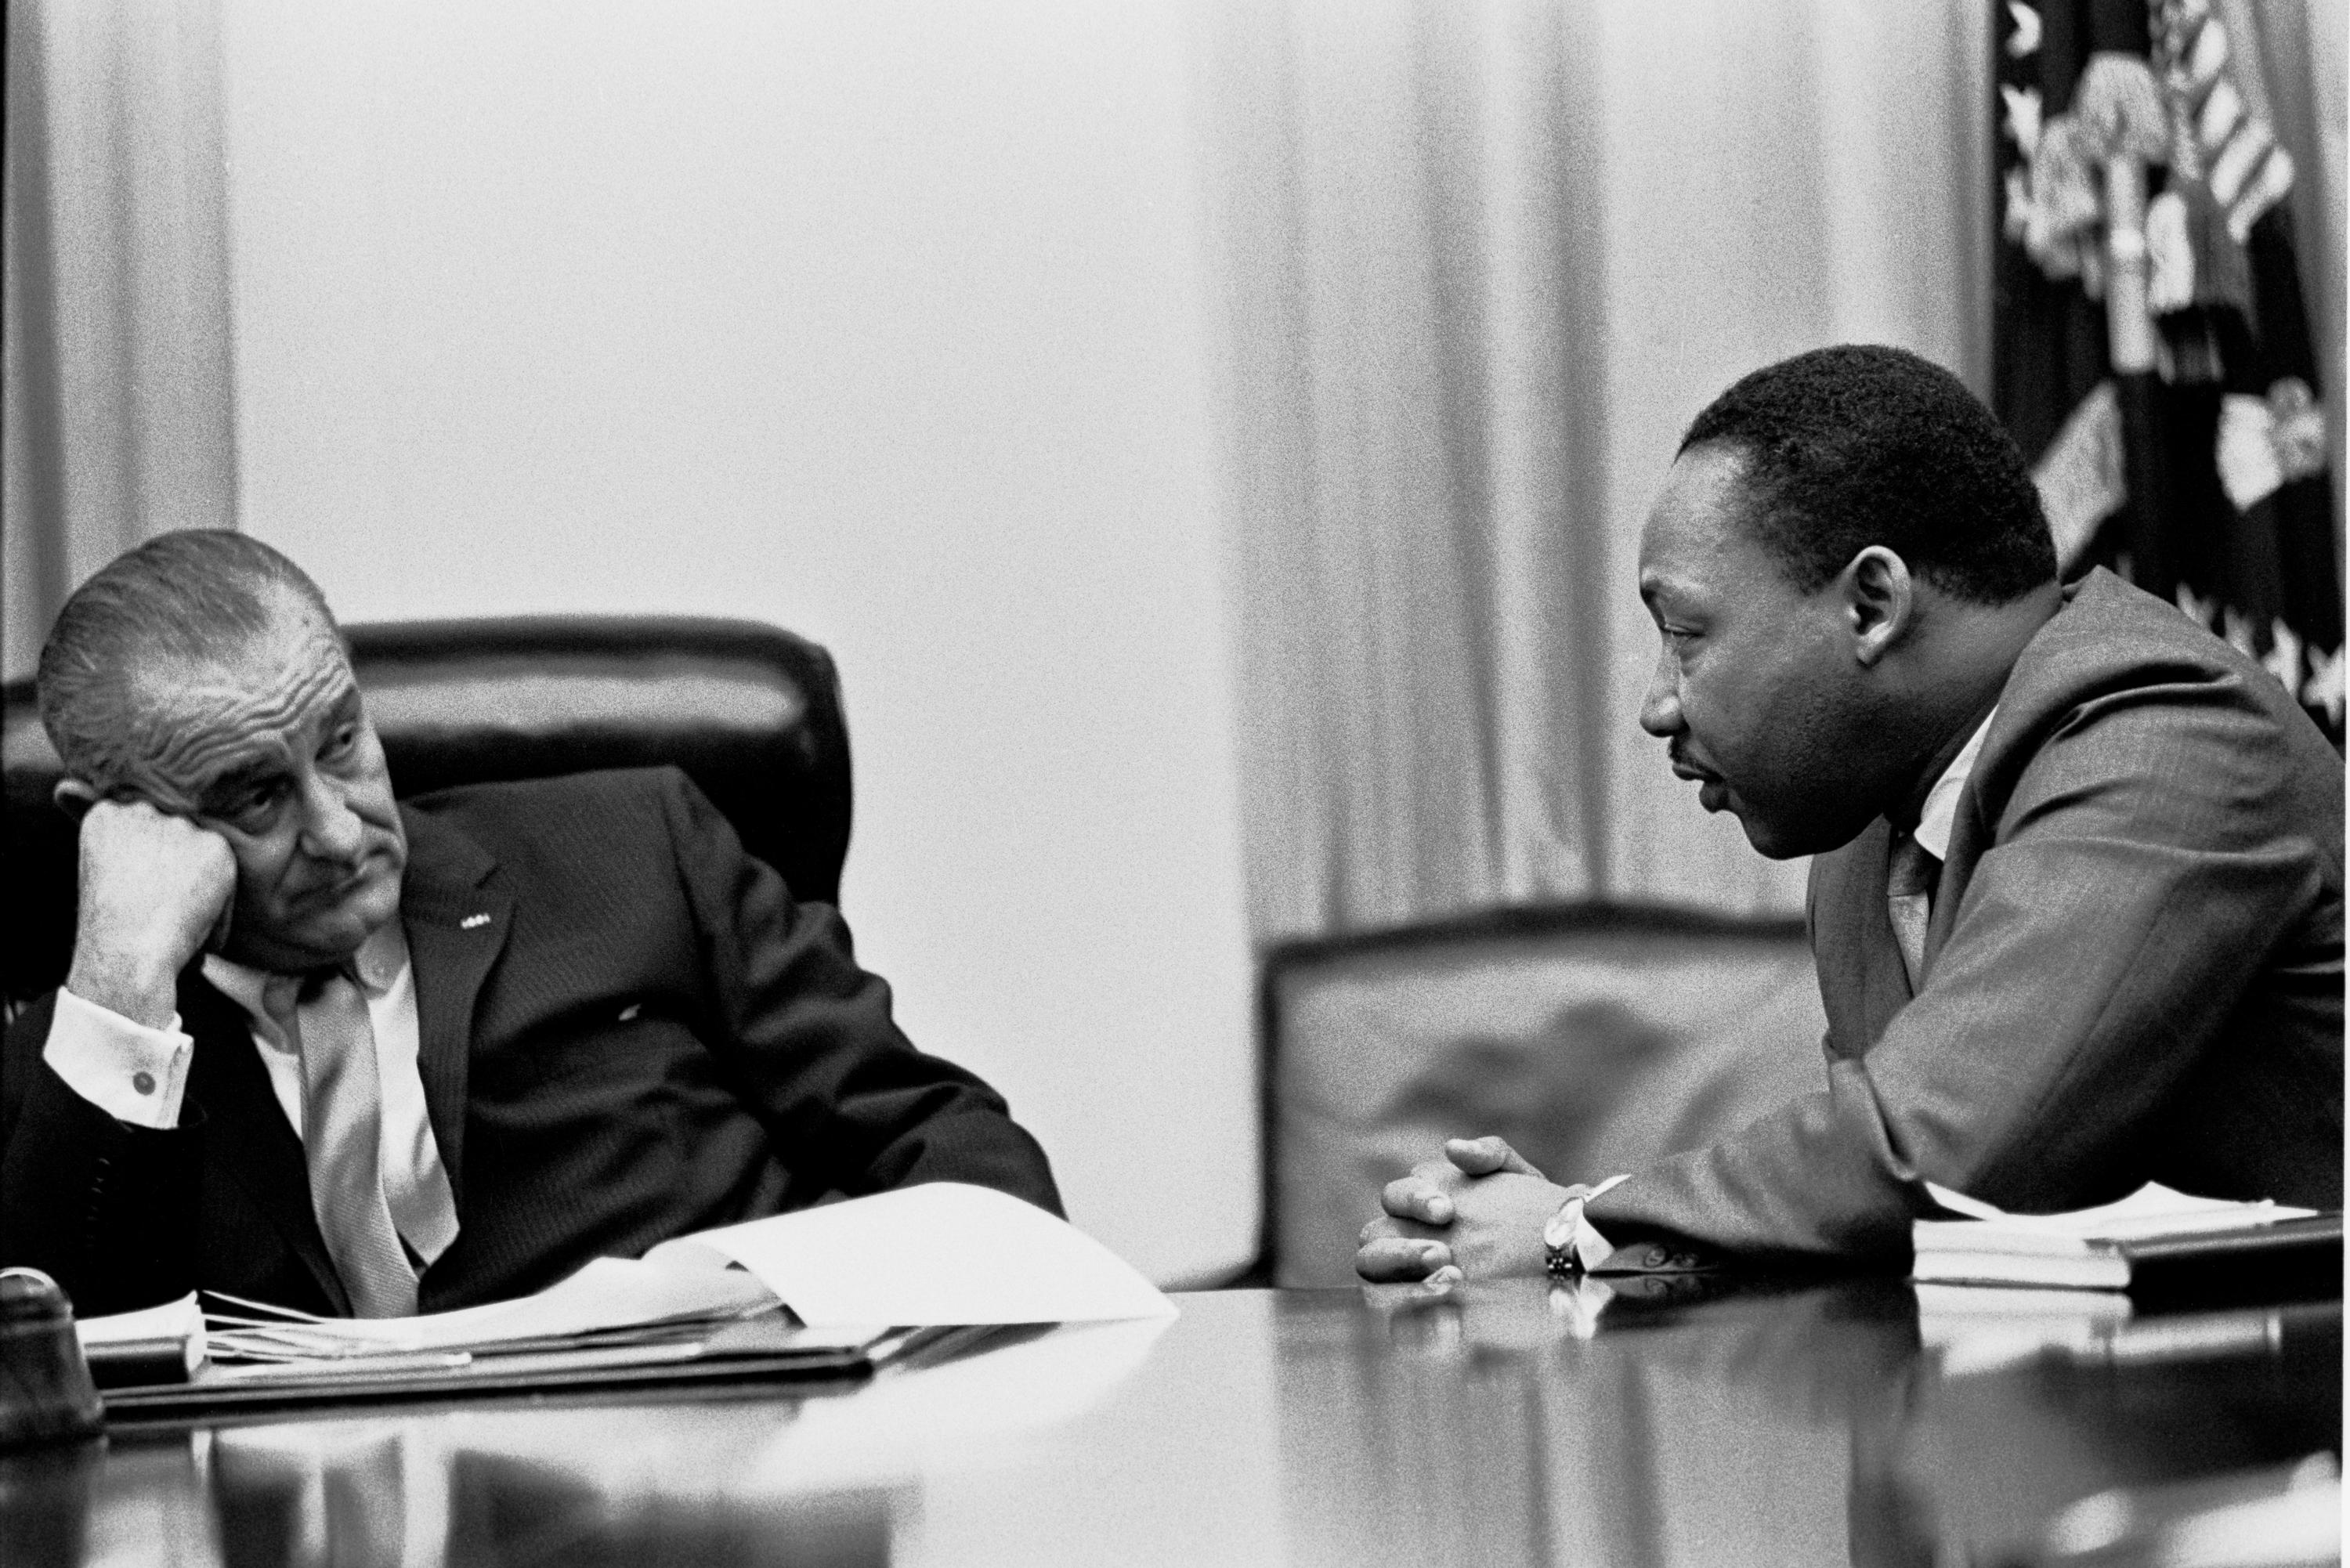 http://upload.wikimedia.org/wikipedia/commons/4/48/Martin_Luther_King,_Jr._and_Lyndon_Johnson_2.jpg